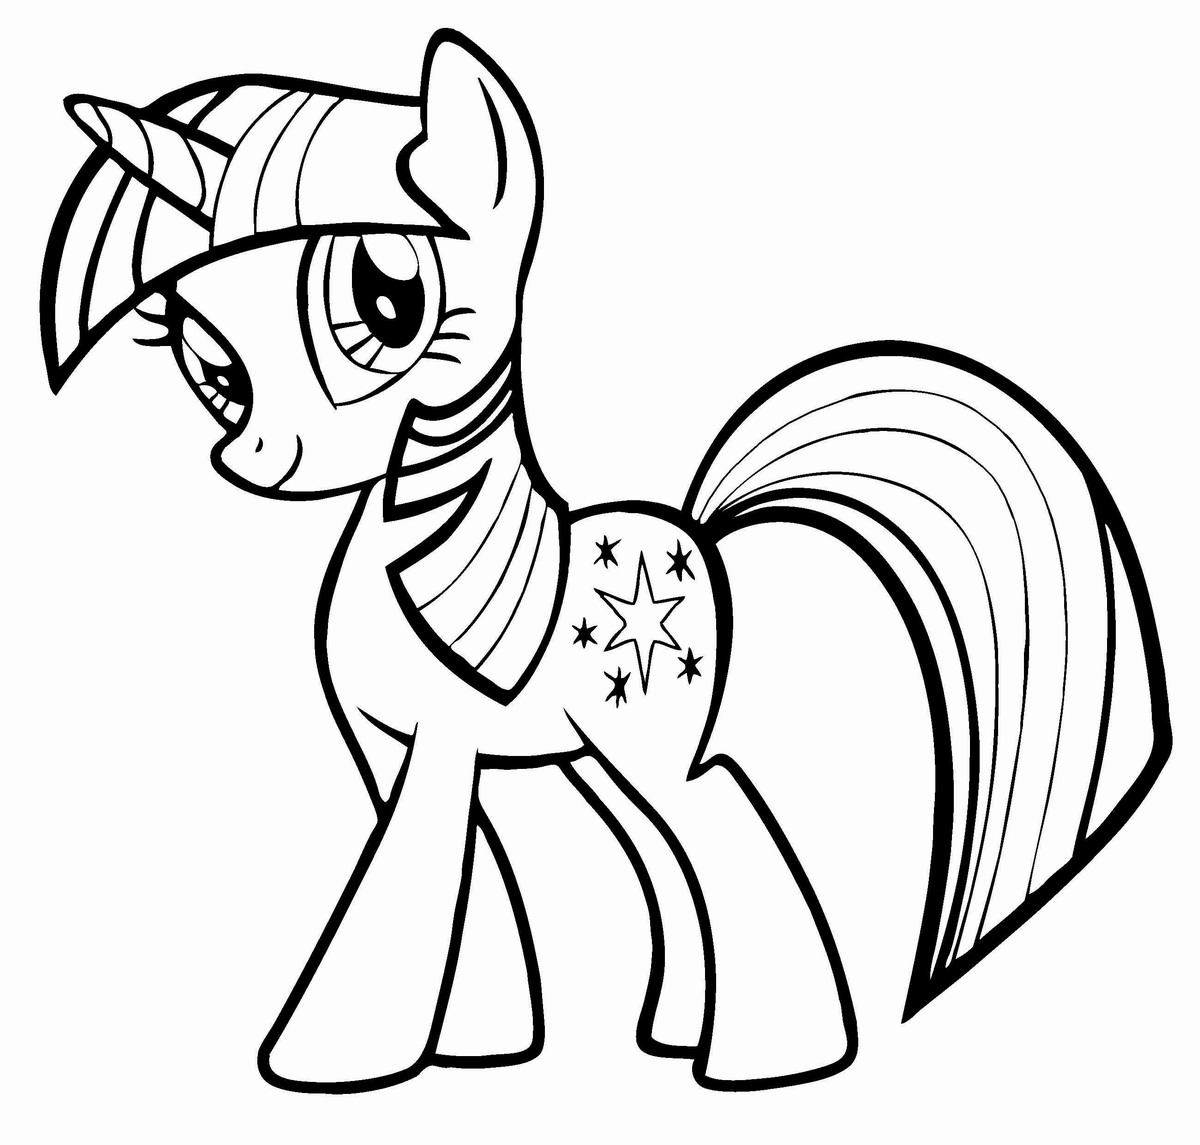 my little pony printables free my little pony coloring page coloring home printables my free little pony